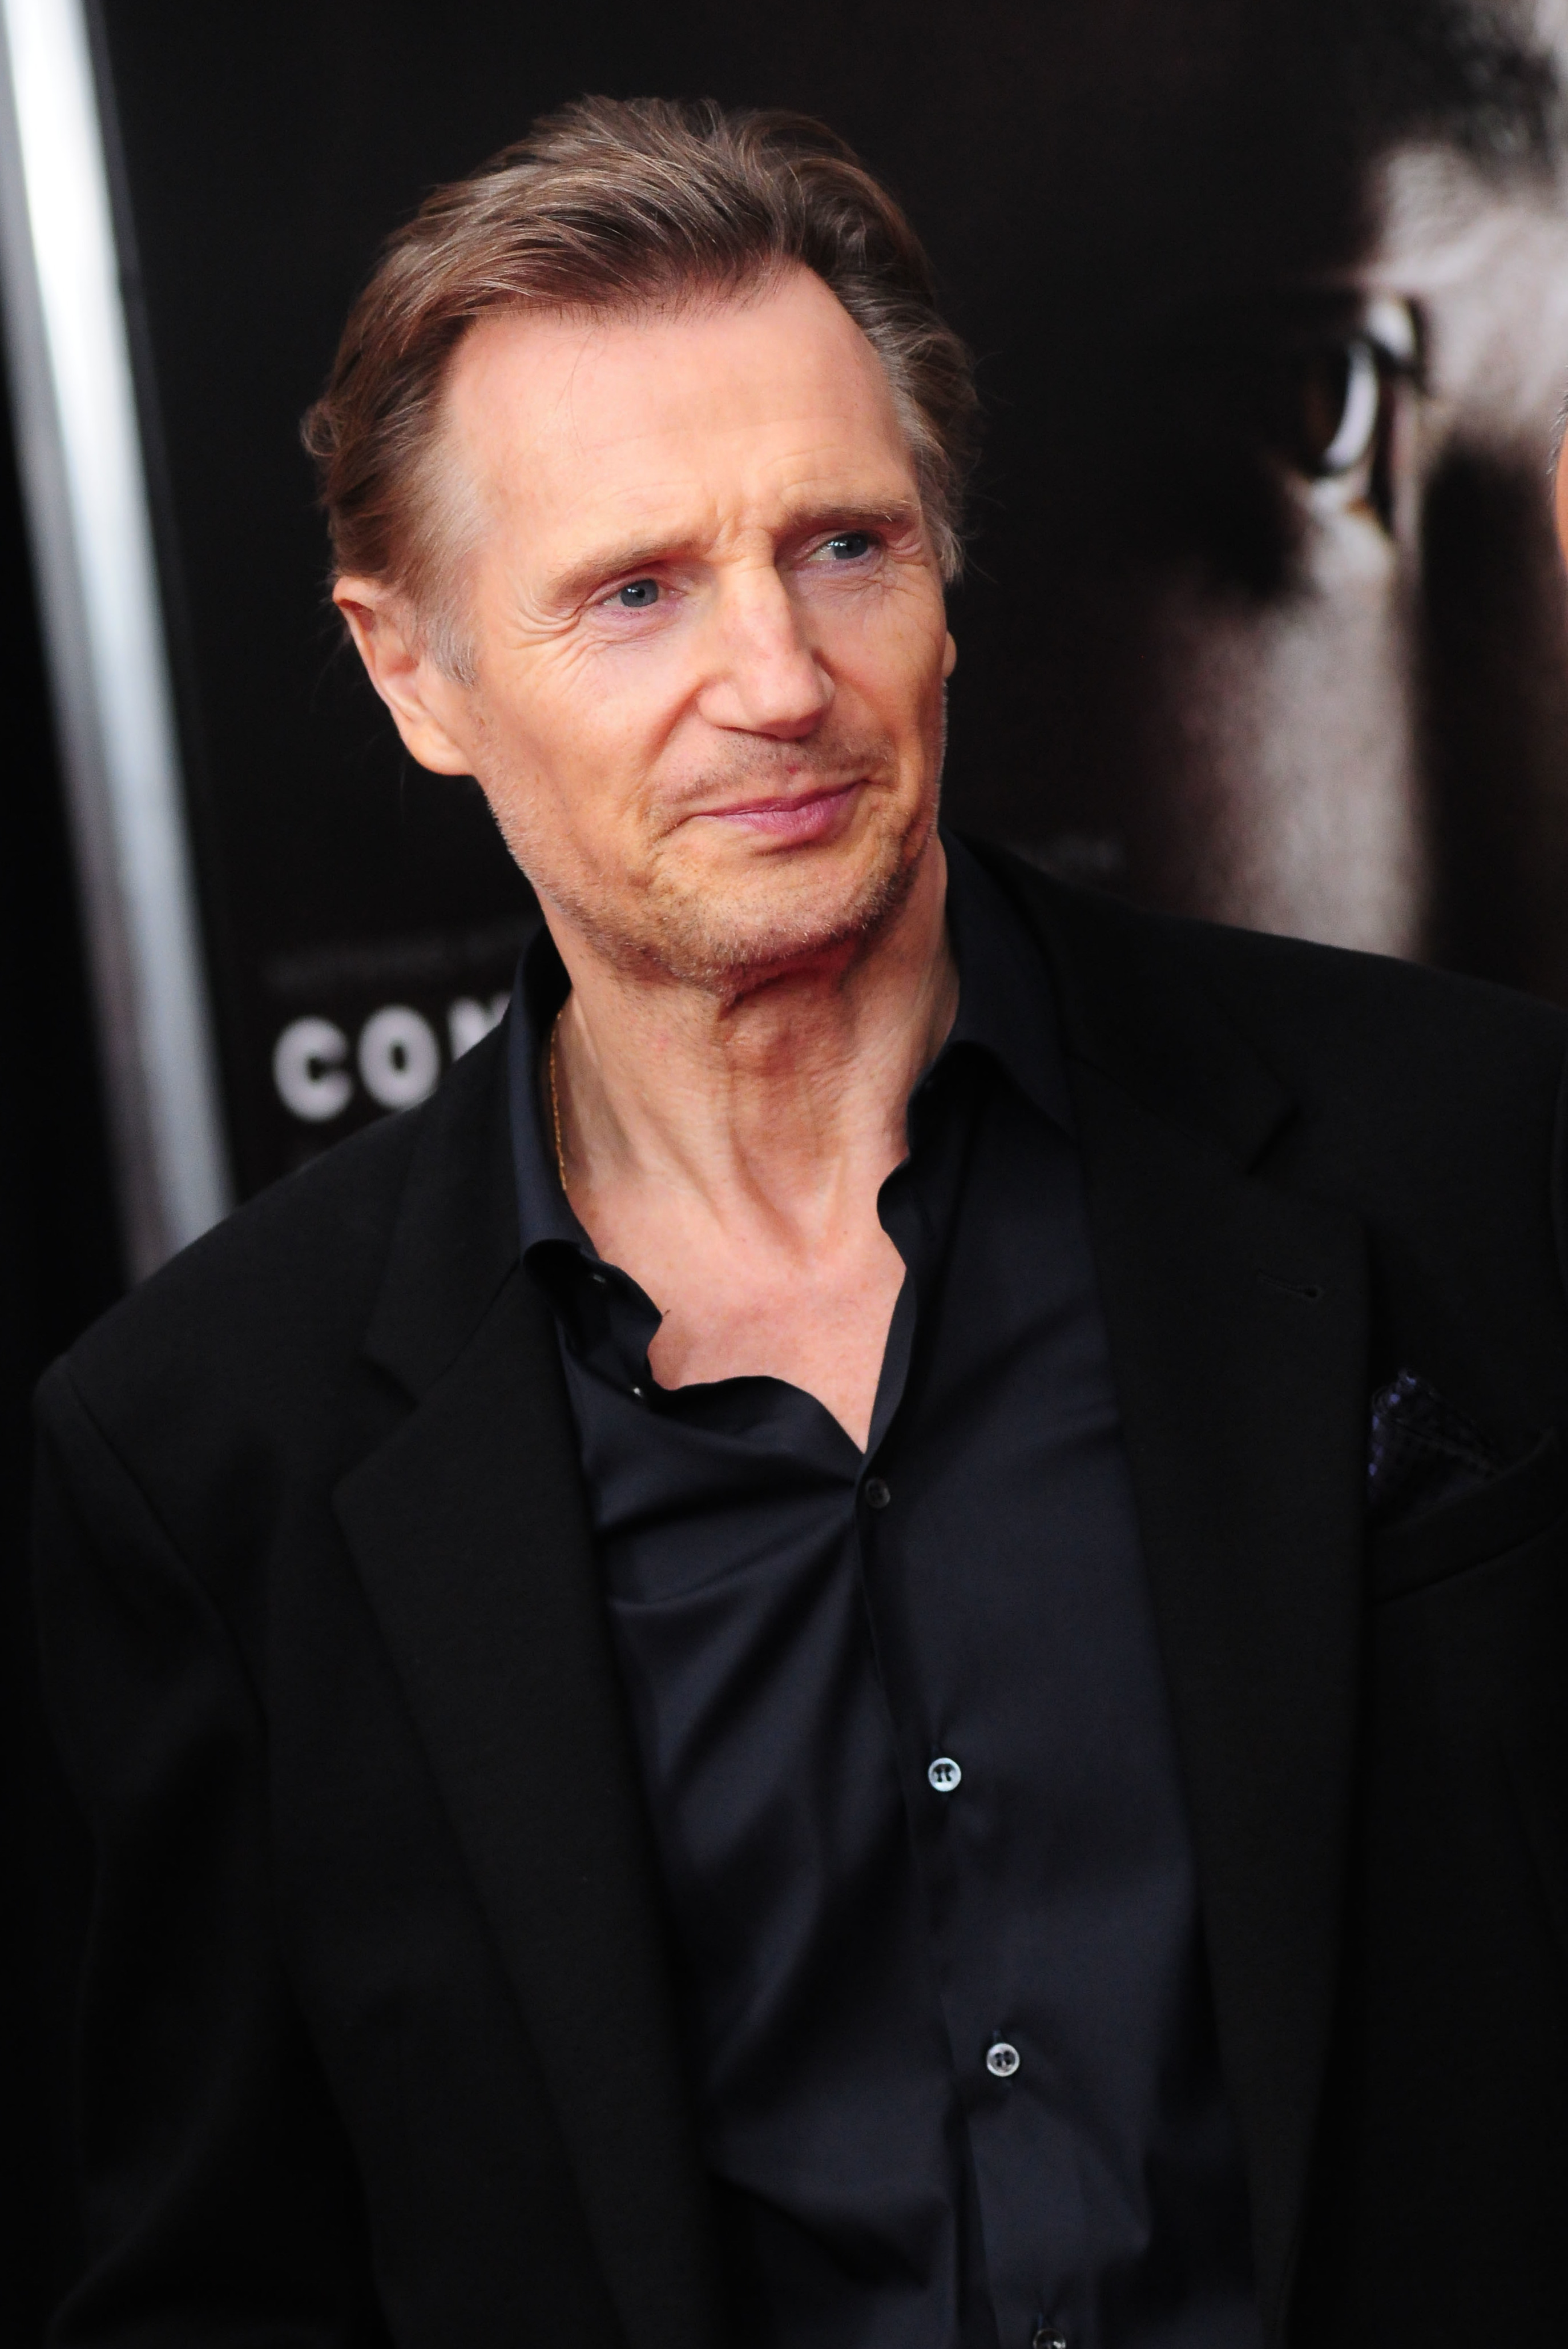 New York City special screening of 'Concussion' at the AMC Loews Lincoln Square - Red Carpet Arrivals                                    Featuring: Liam Neeson                  Where: New York City, New York, United States                  When: 16 Dec 2015                  Credit: Dan Jackman/WENN.com